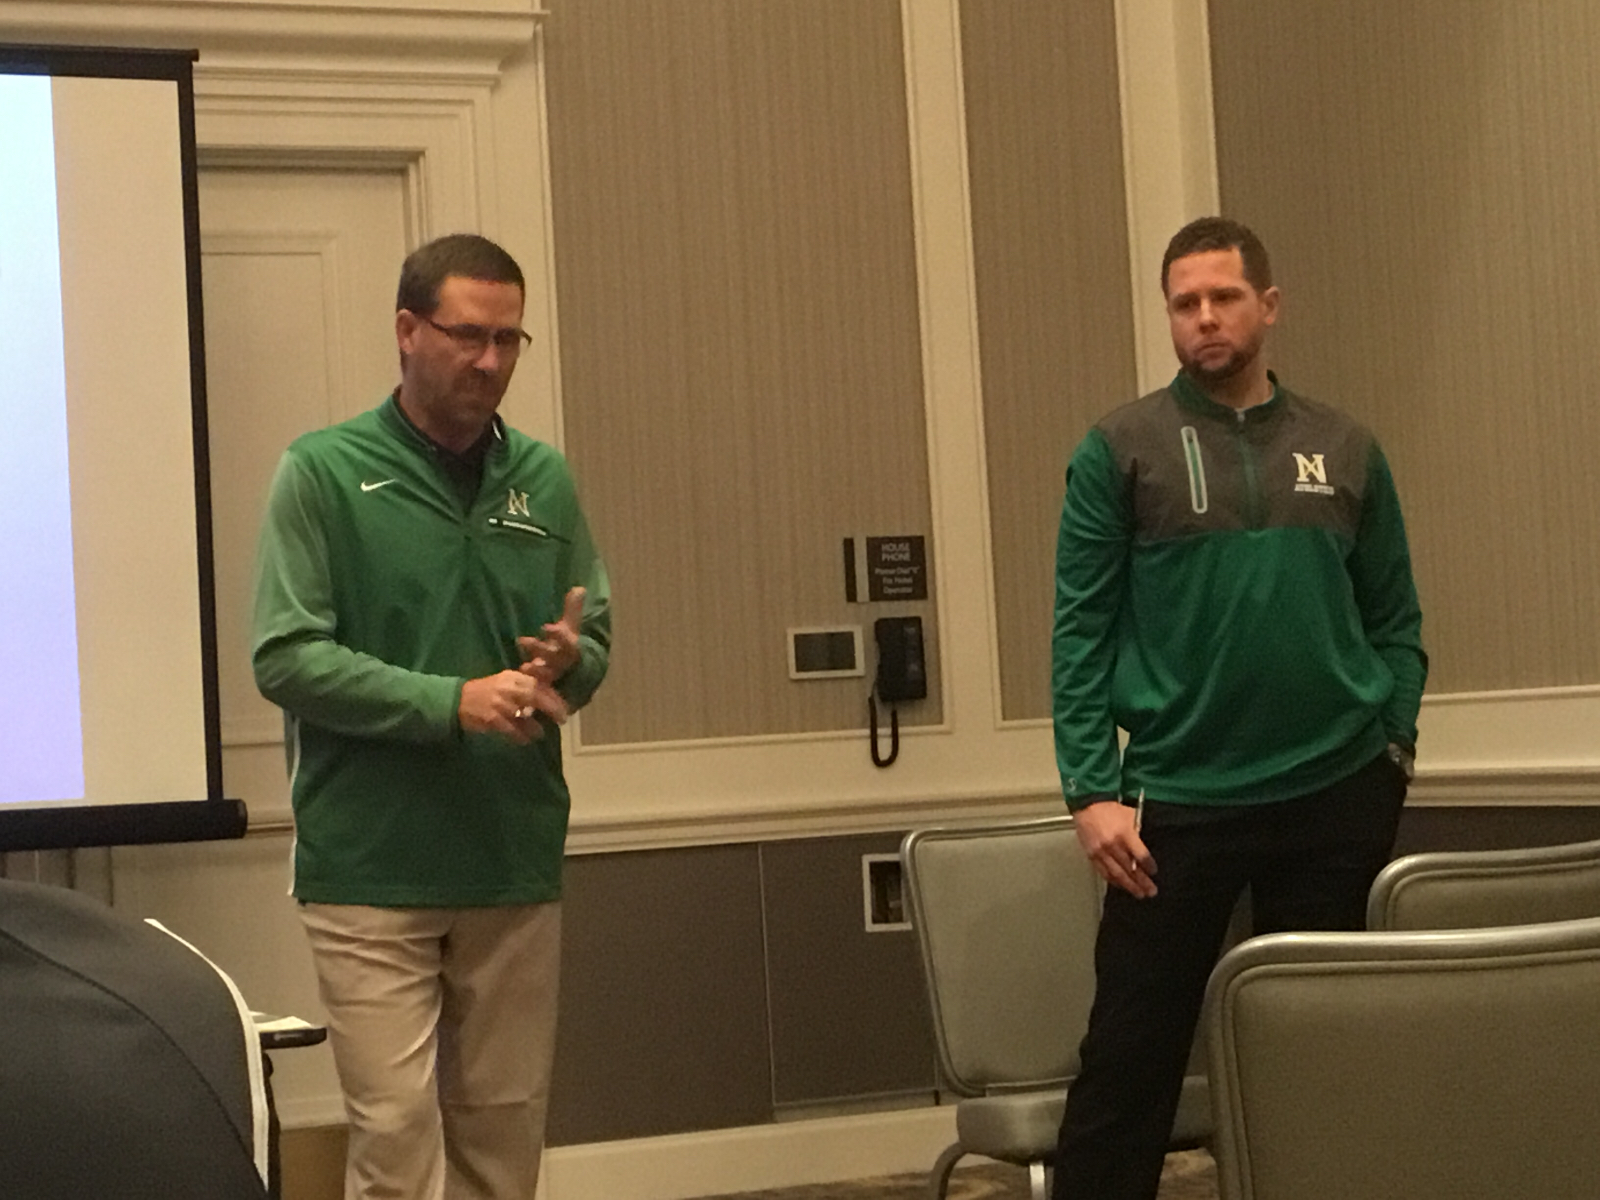 OIAAA Conference — Micah Harding and Jim Smith